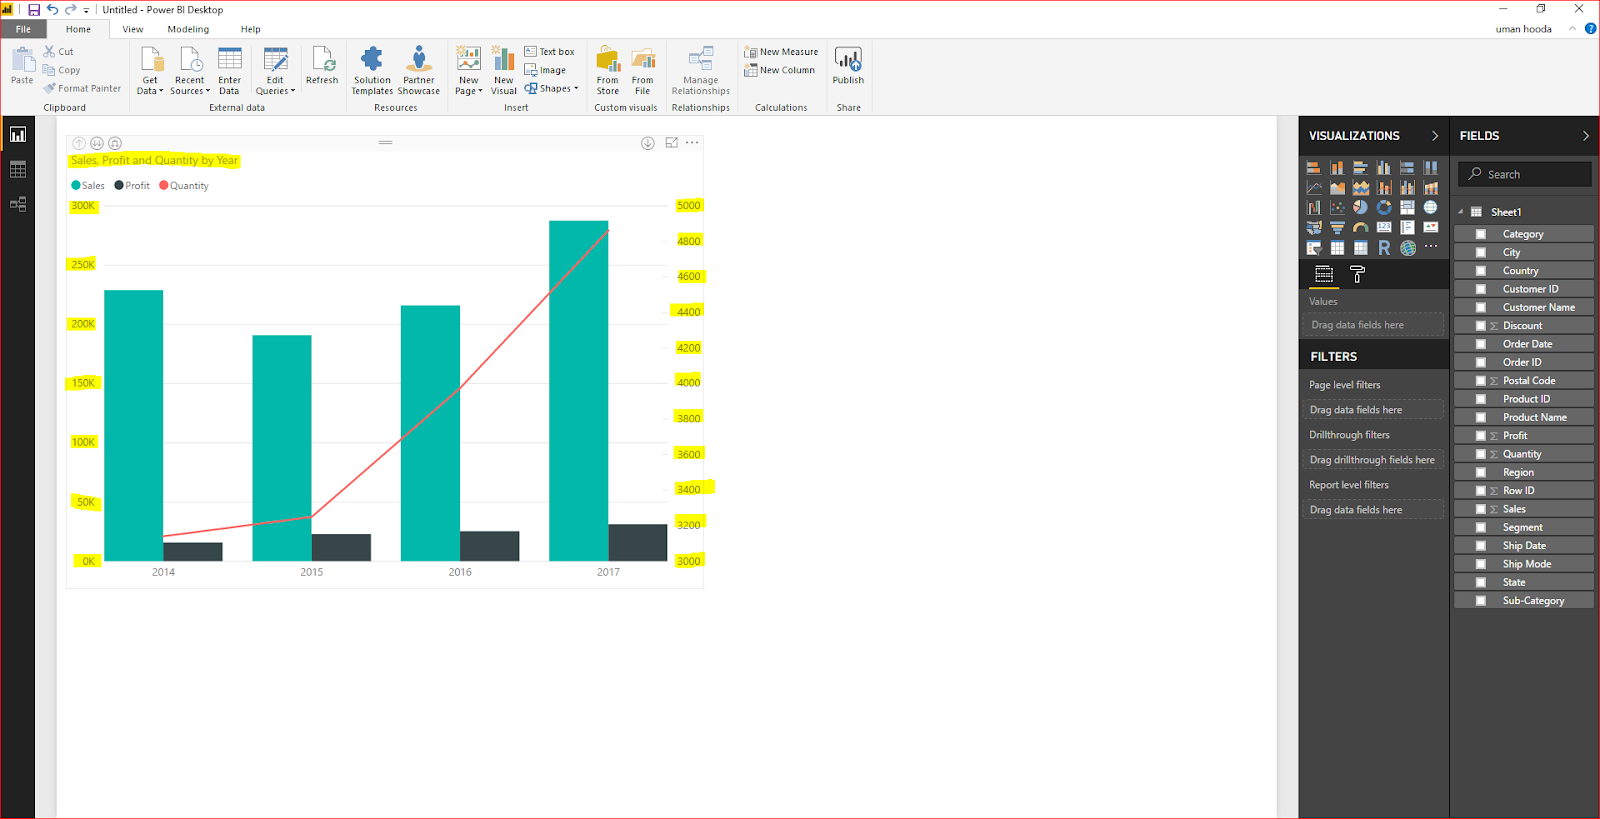 Dual Axis Chart in Microsoft Power BI - Step By Step 34